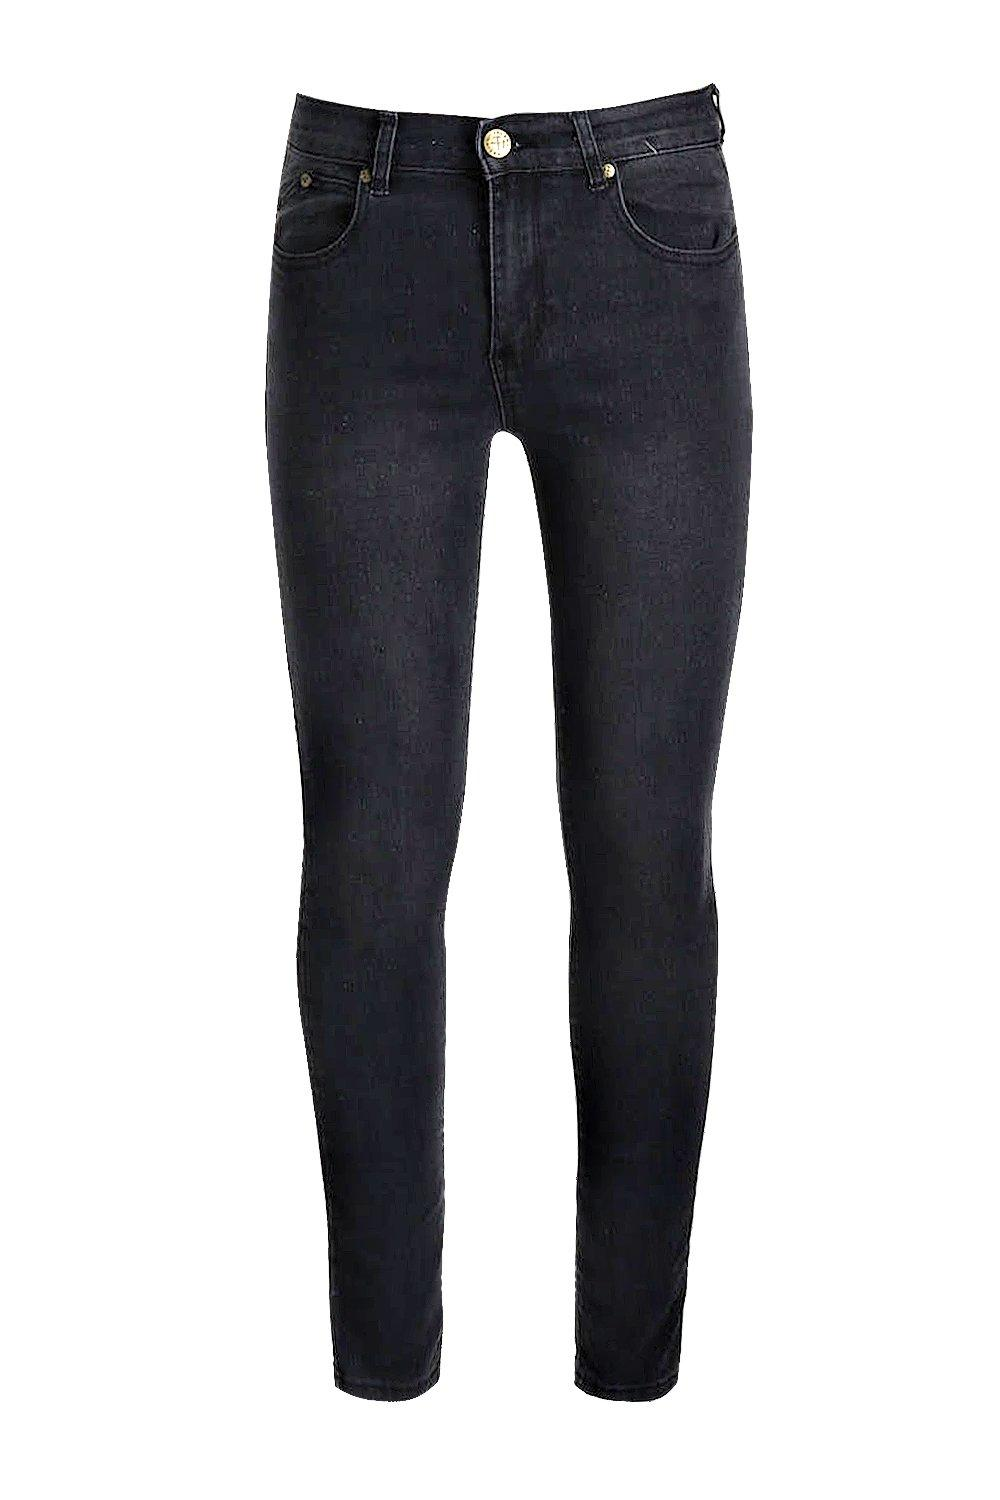 boohooMAN Super Skinny Stretch Denim Charcoal Jeans